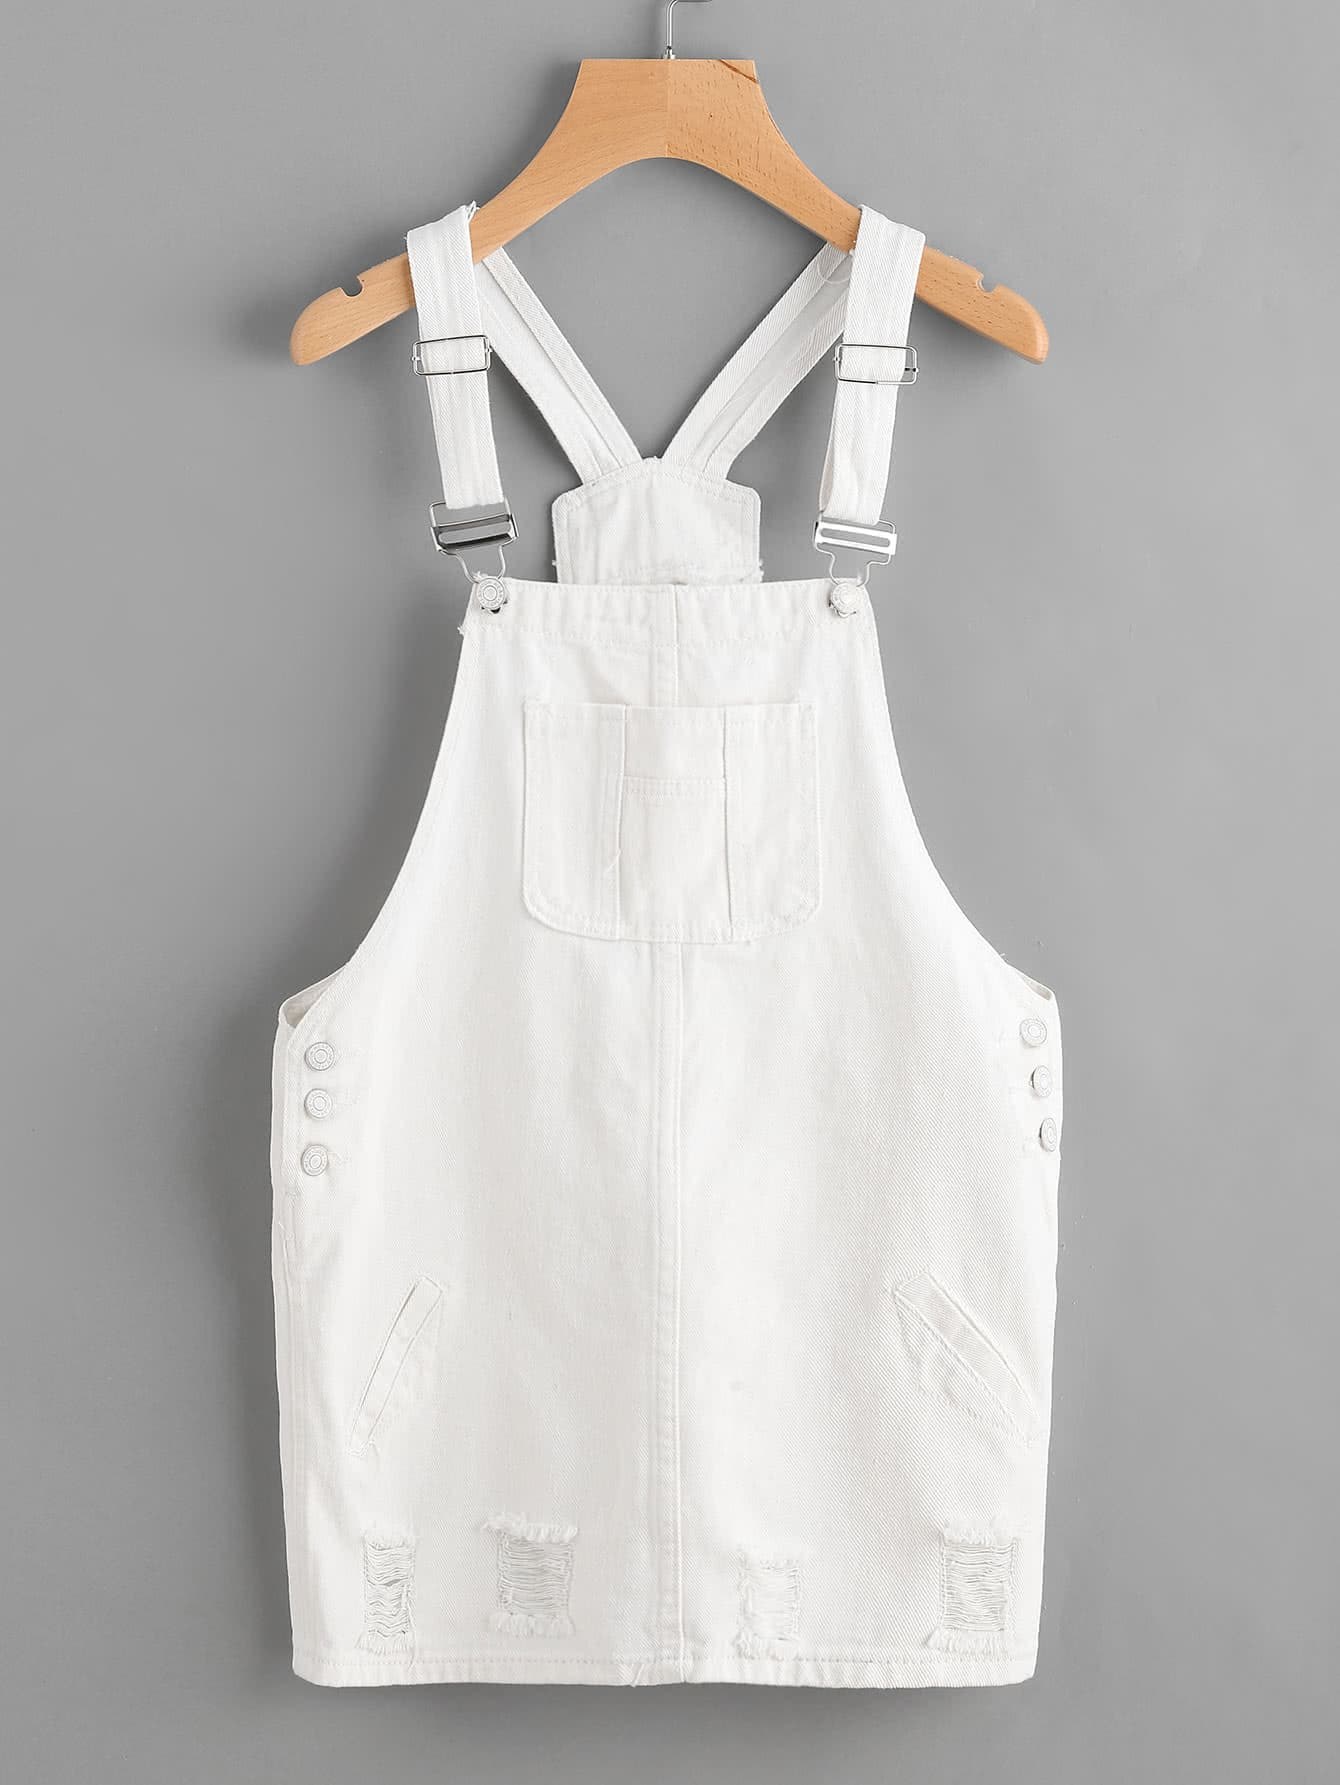 Badge Denim Overall Dress With Pockets overall yumi overall